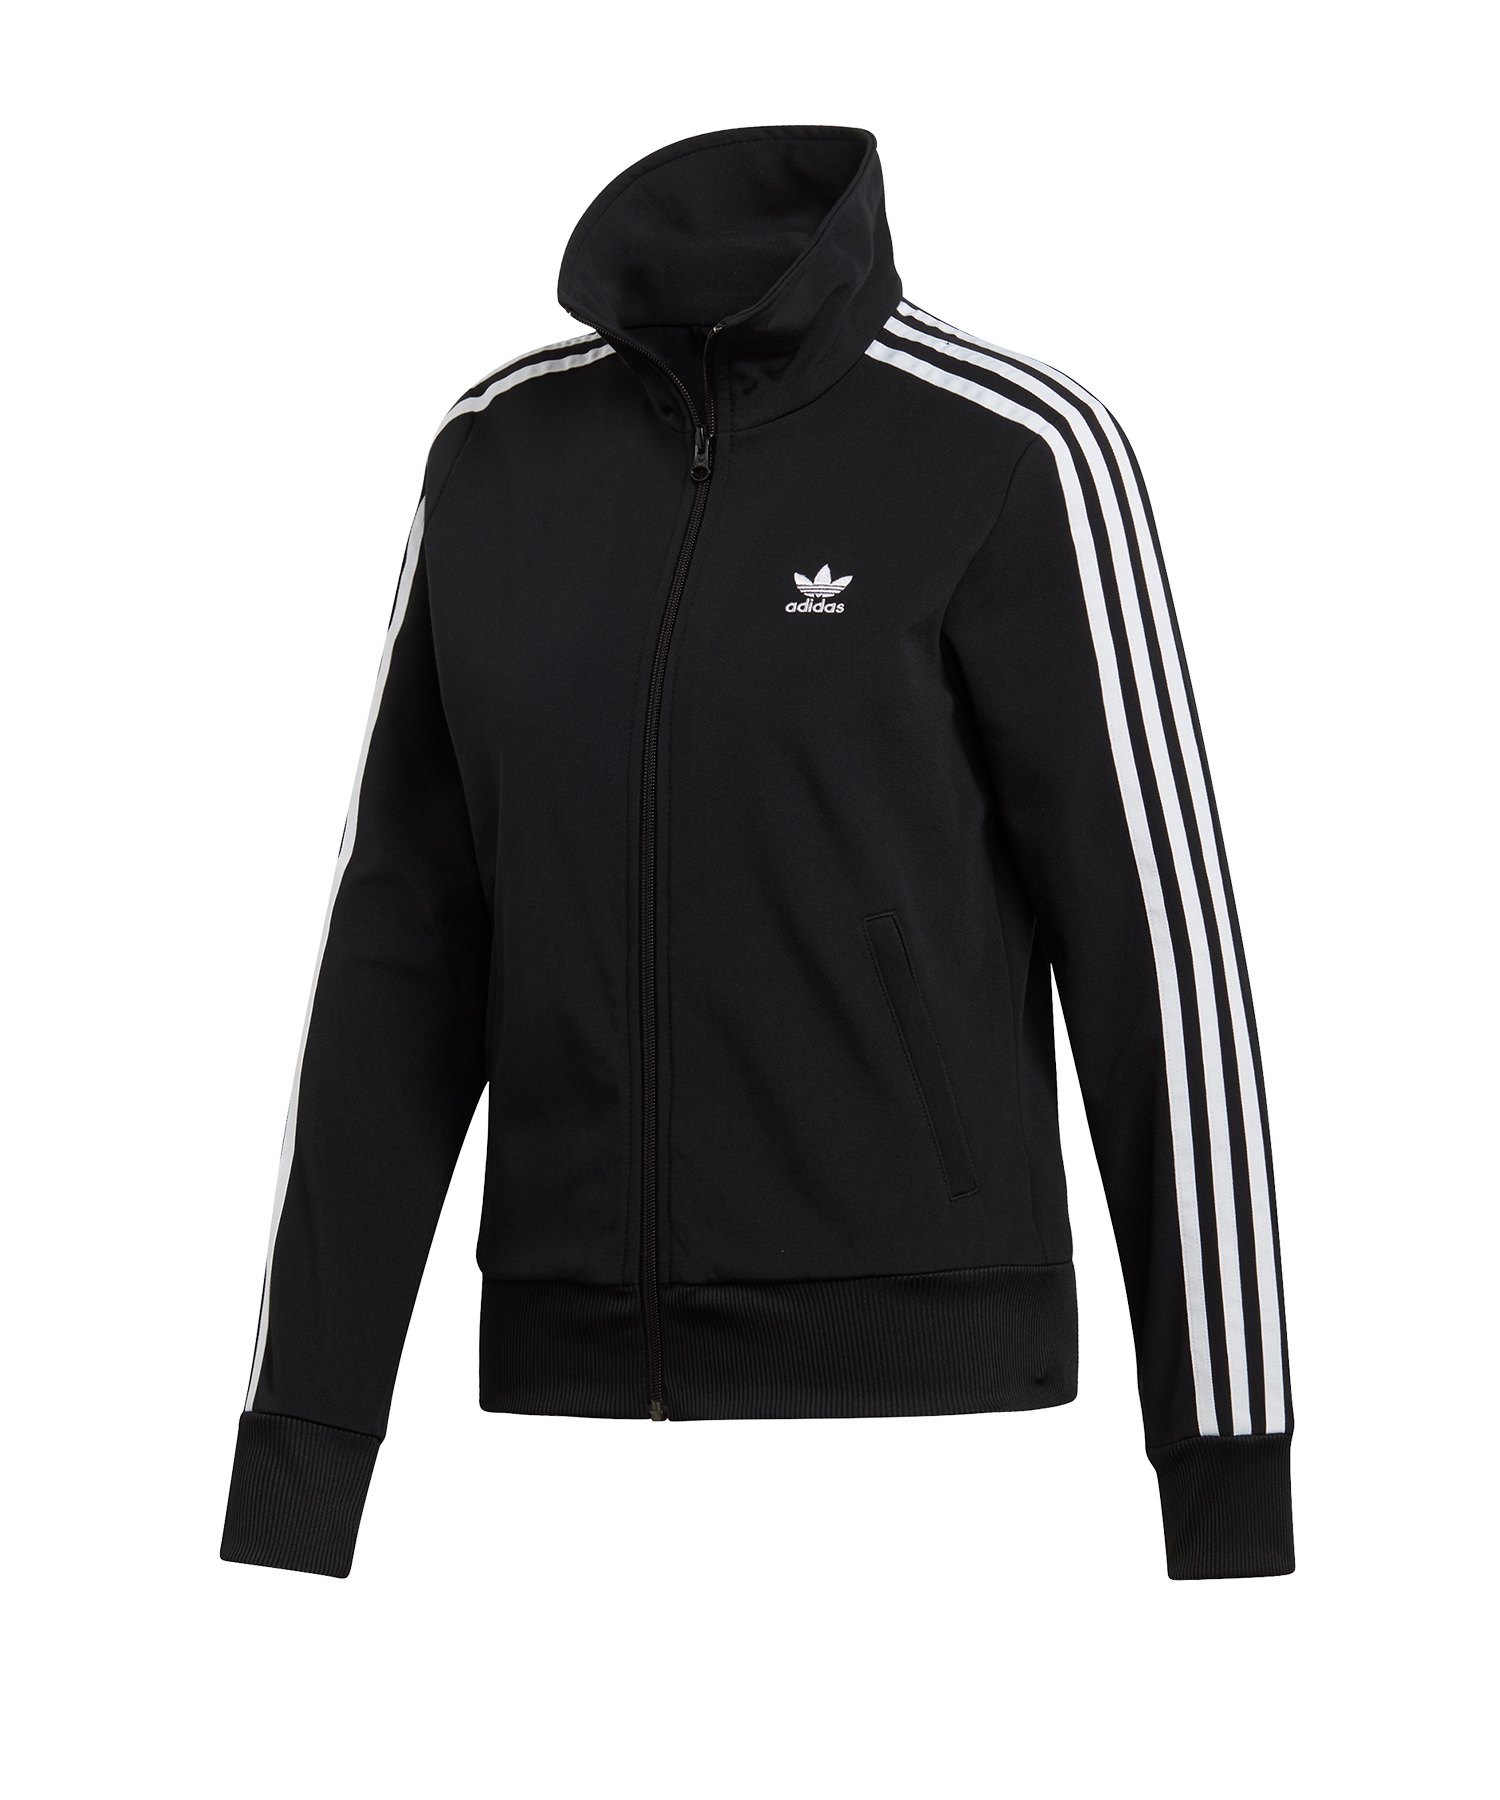 adidas Originals Track Top Jacke Damen Schwarz